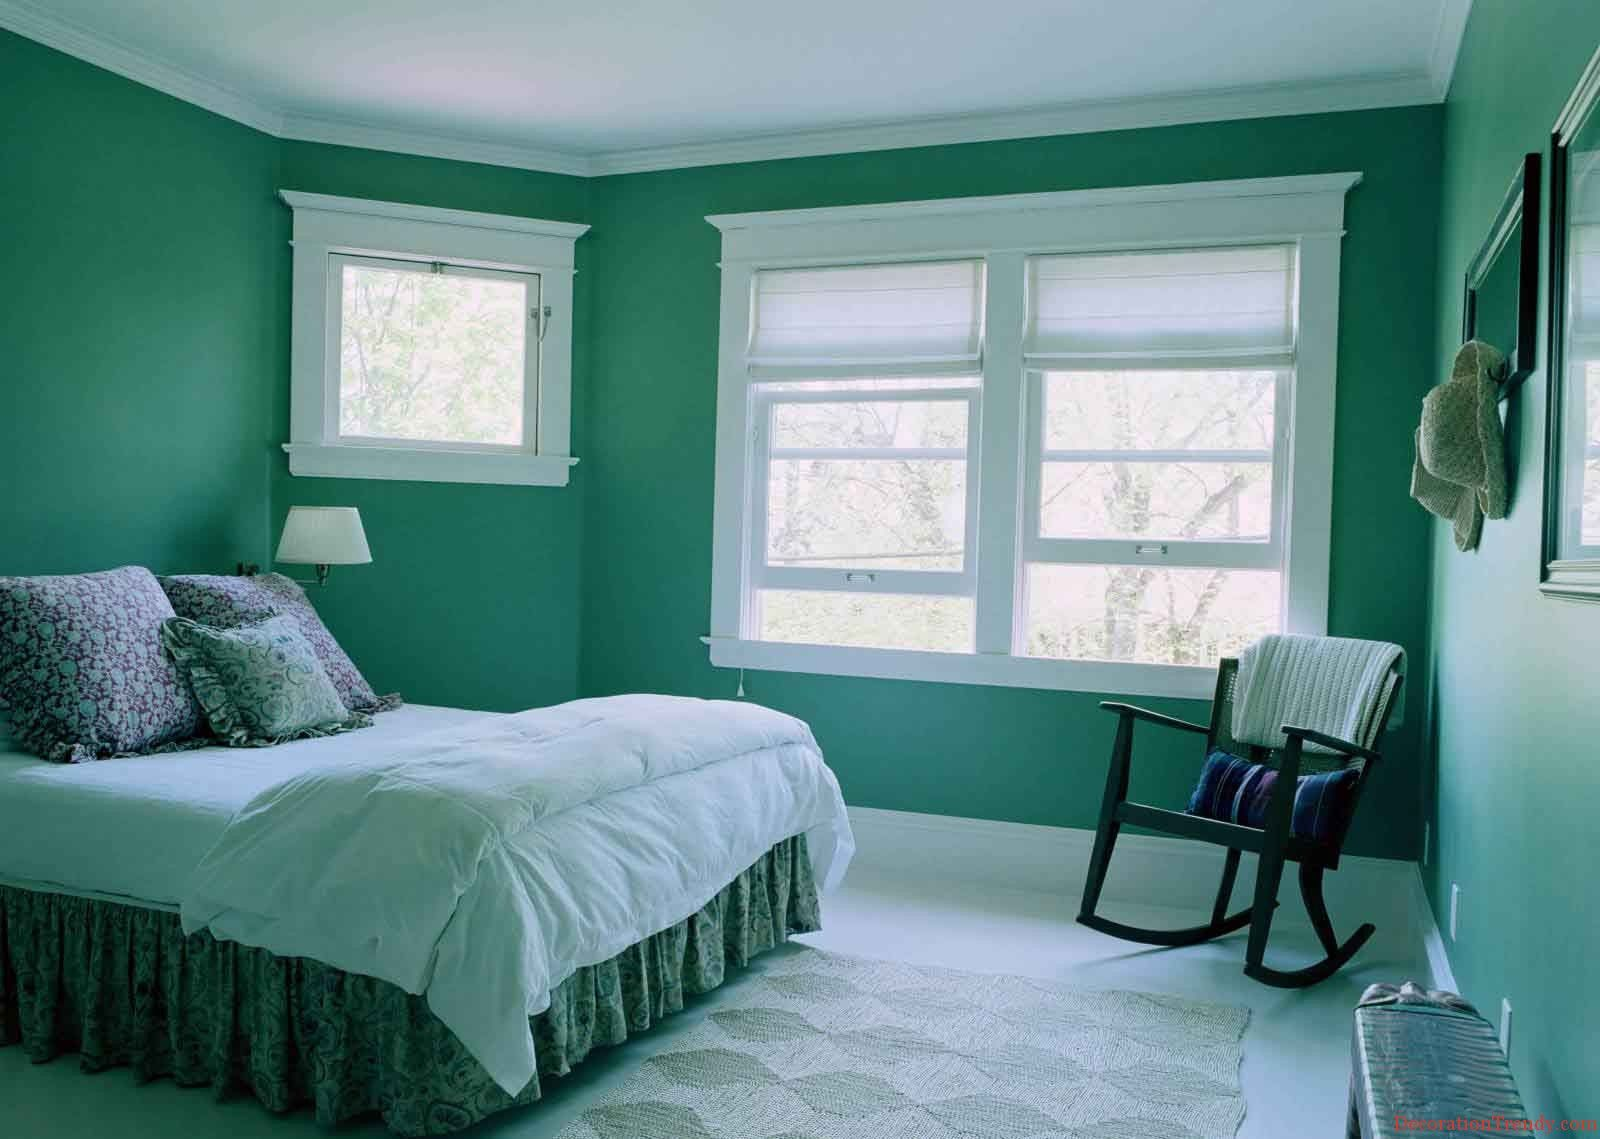 Bedroom Peacefully Green Bedroom Color Design Ideas Beautiful Modern Color Sc Bedroom Paint Color Inspiration Bedroom Color Schemes Bedroom Paint Colors Master